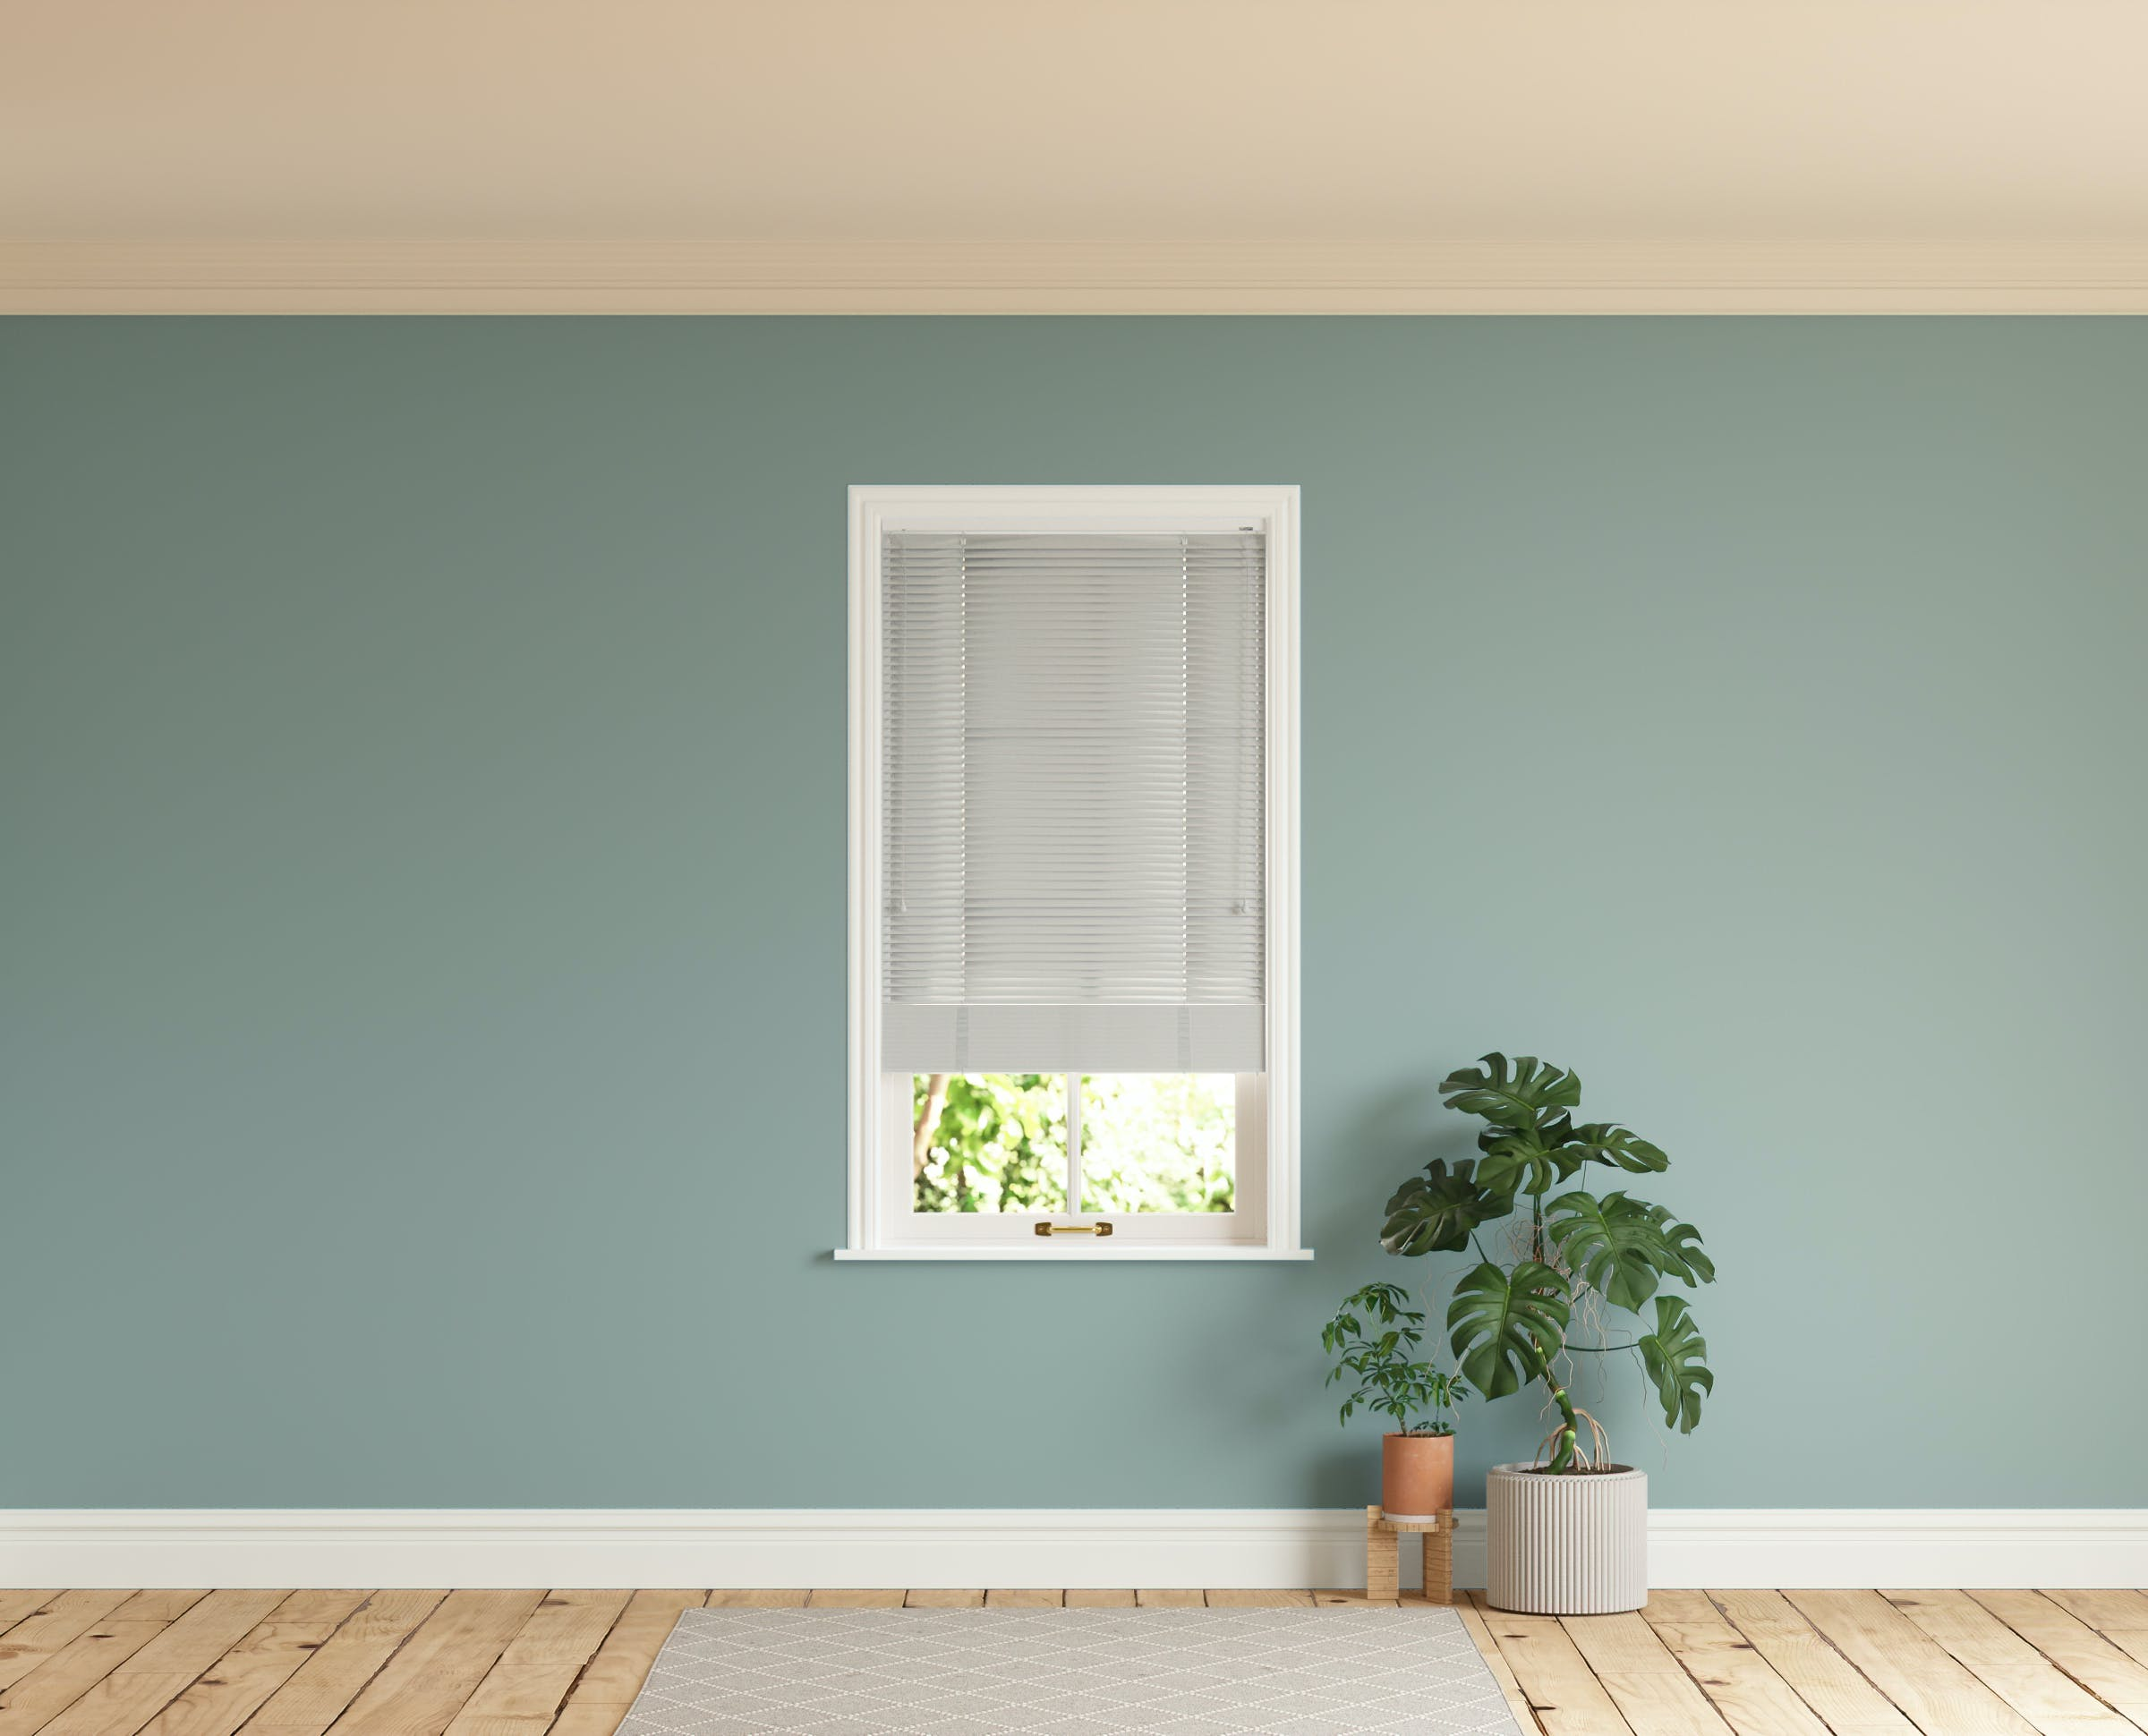 Room with walls painted in Lick Teal 01 and Grey 03 Venetian blinds